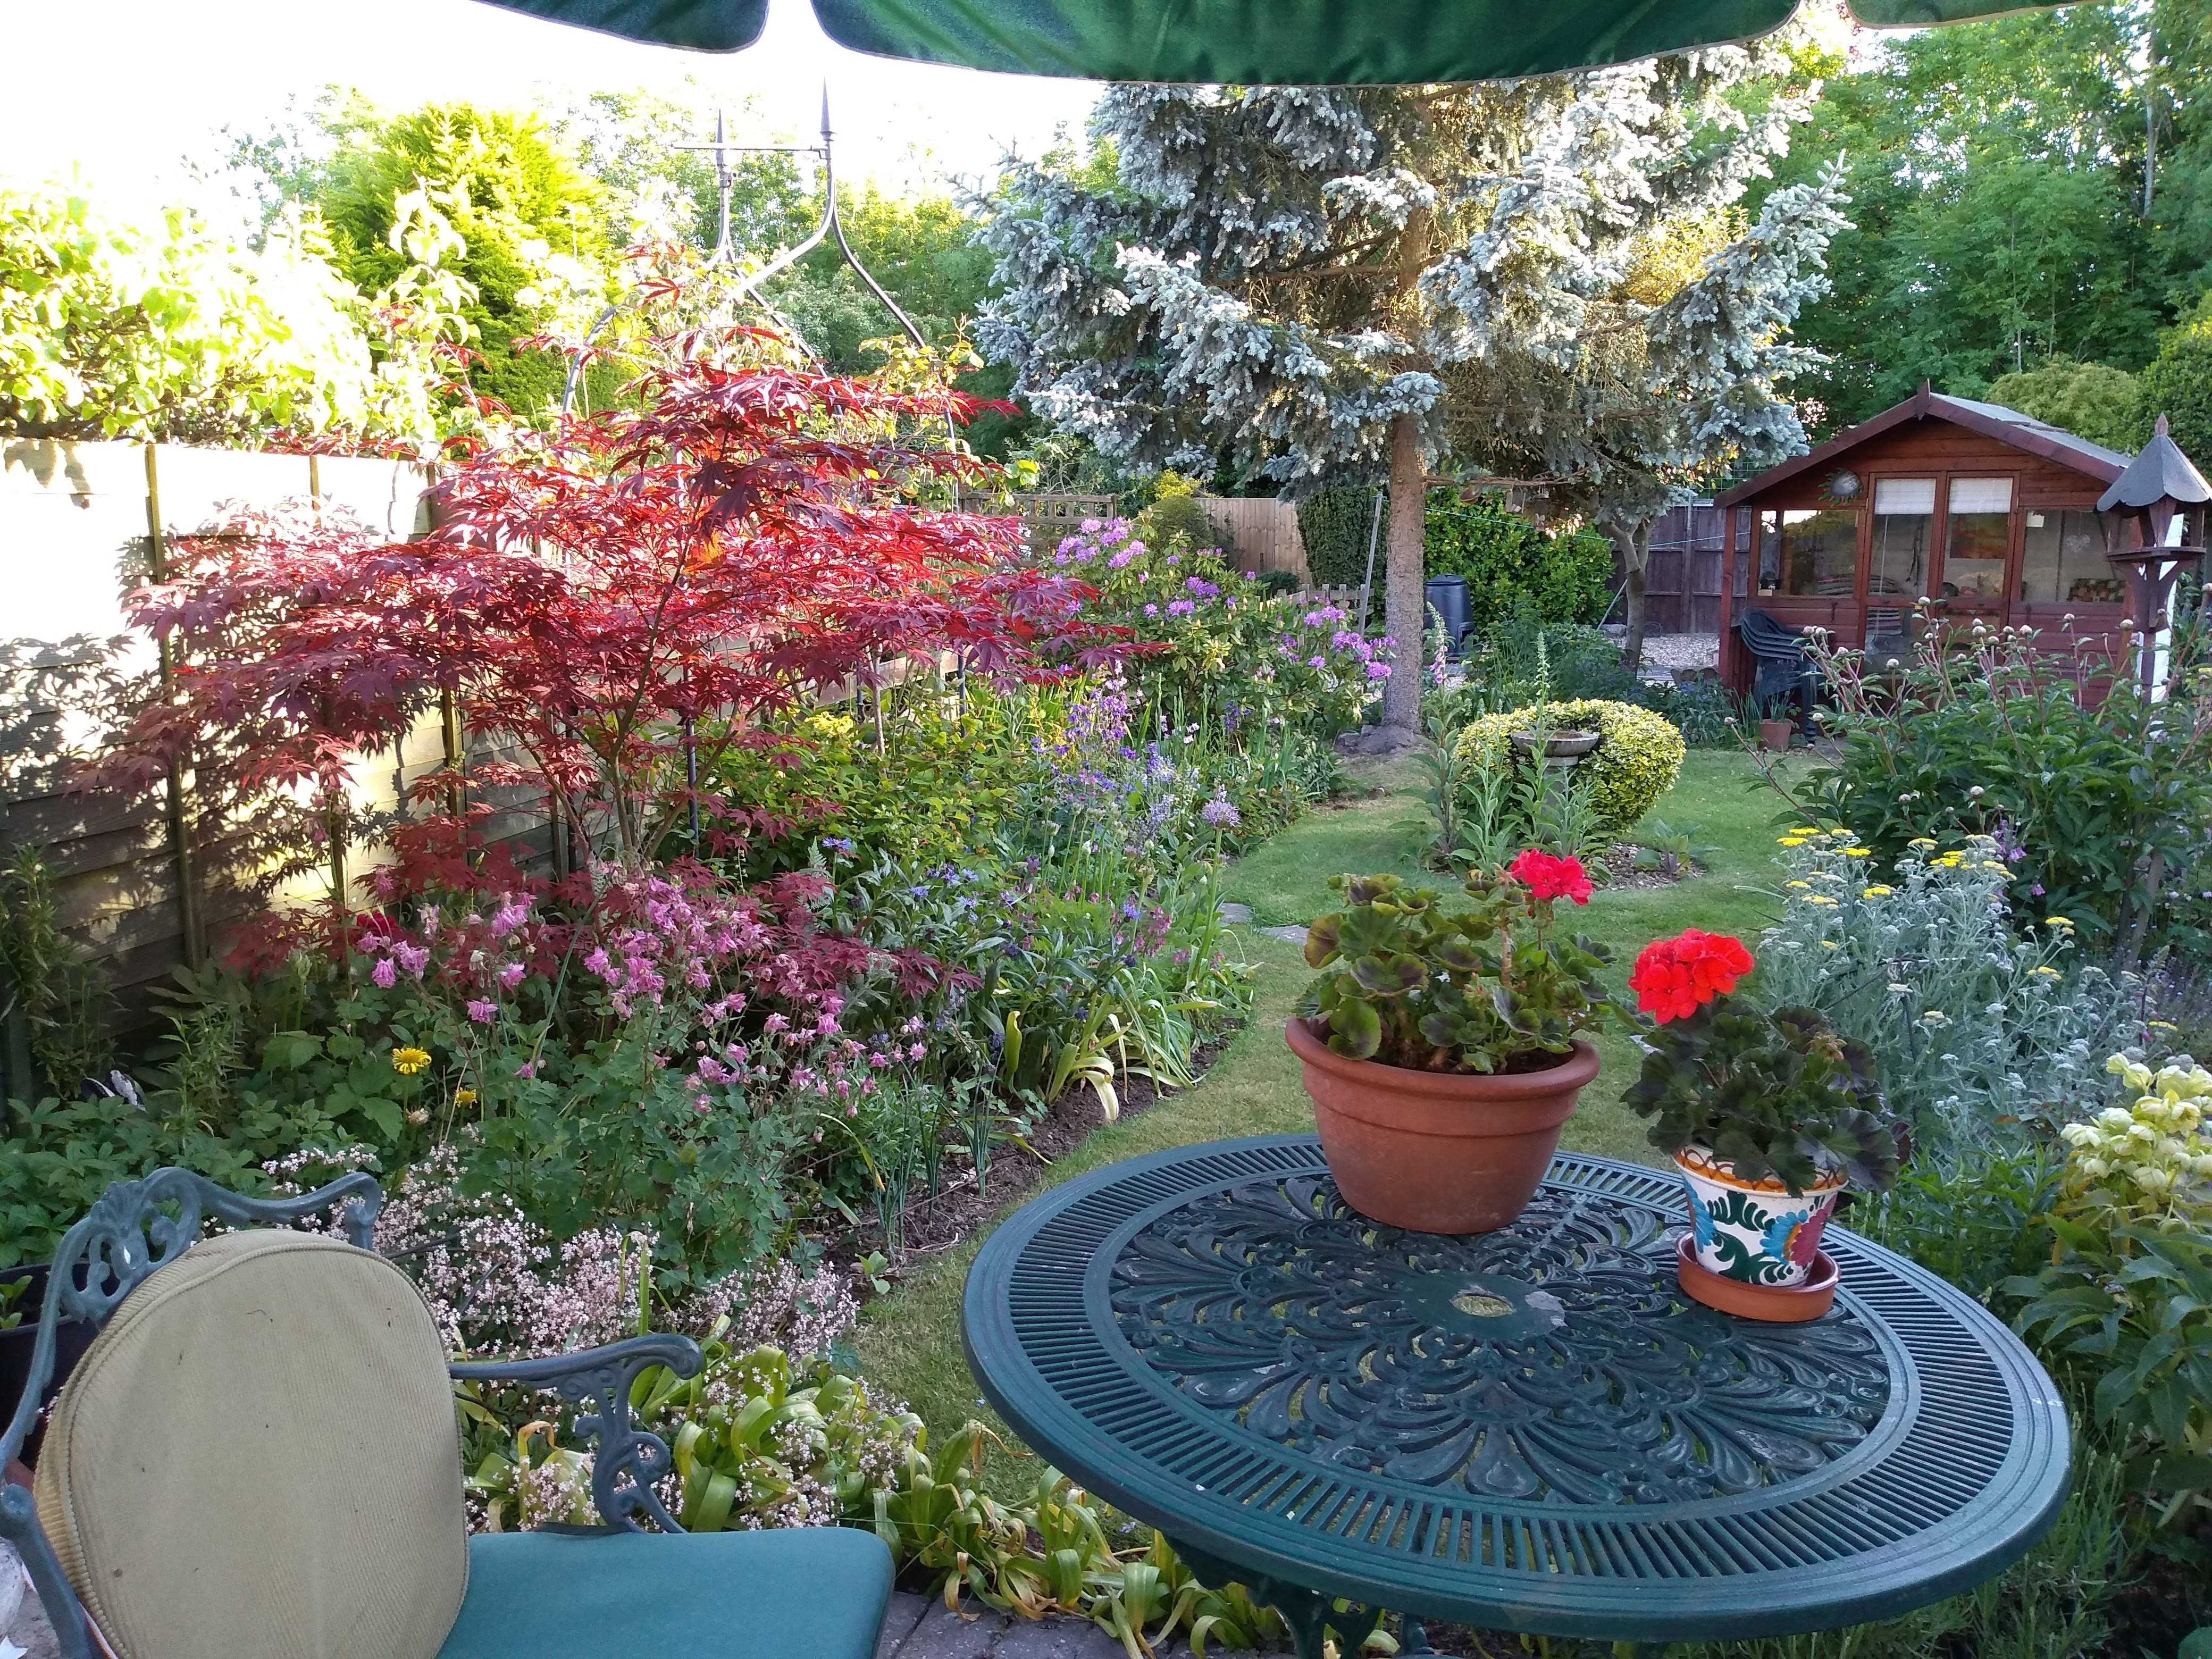 Picure of small round garden table with garden and shed in background, lots of flowers as it's mid May